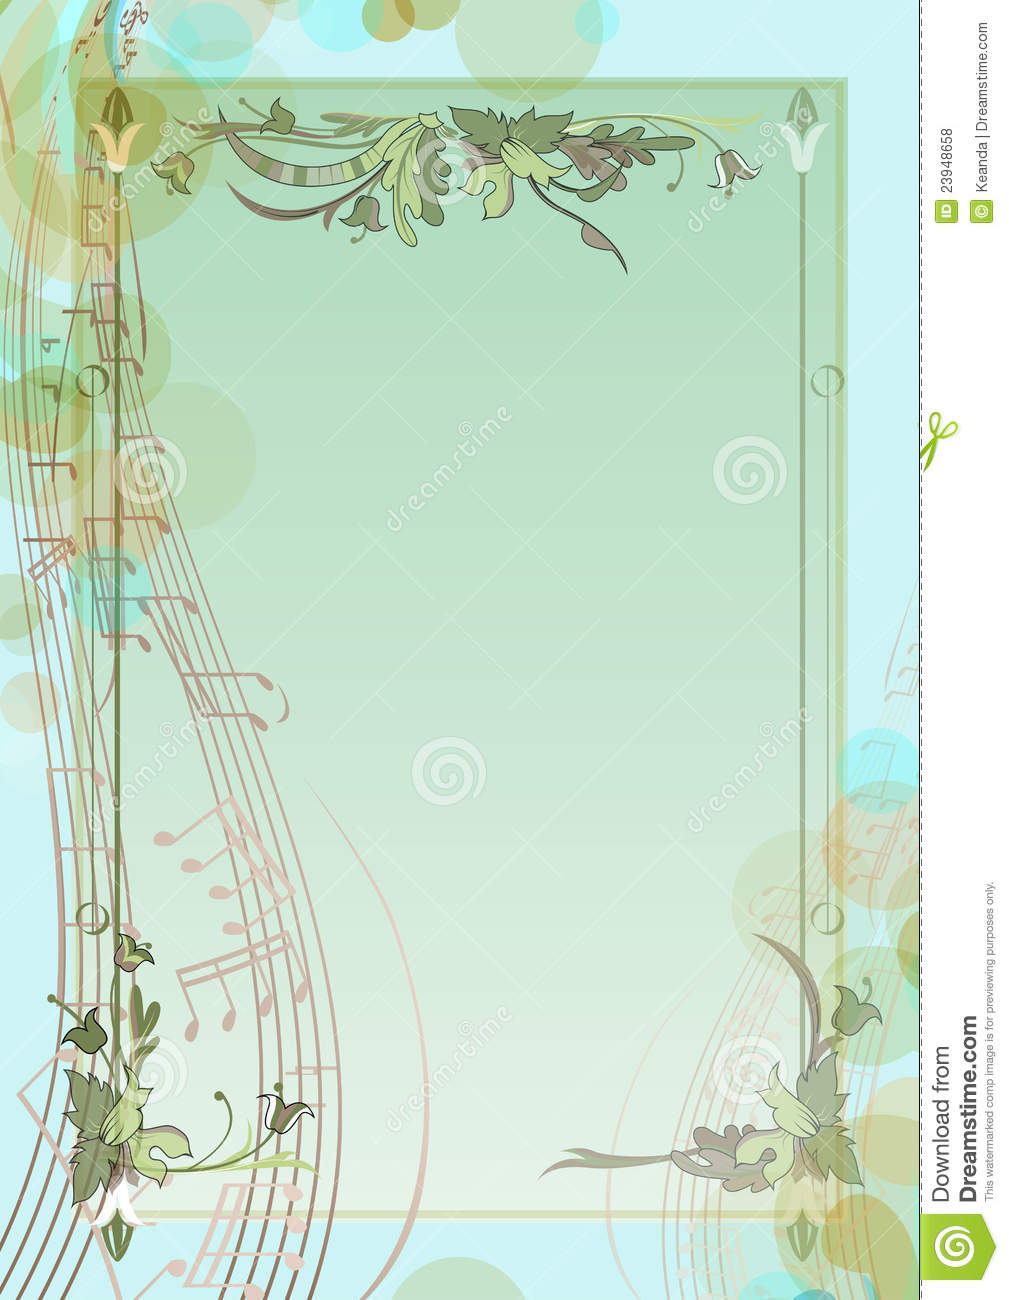 music notes backgrounds floral - photo #36